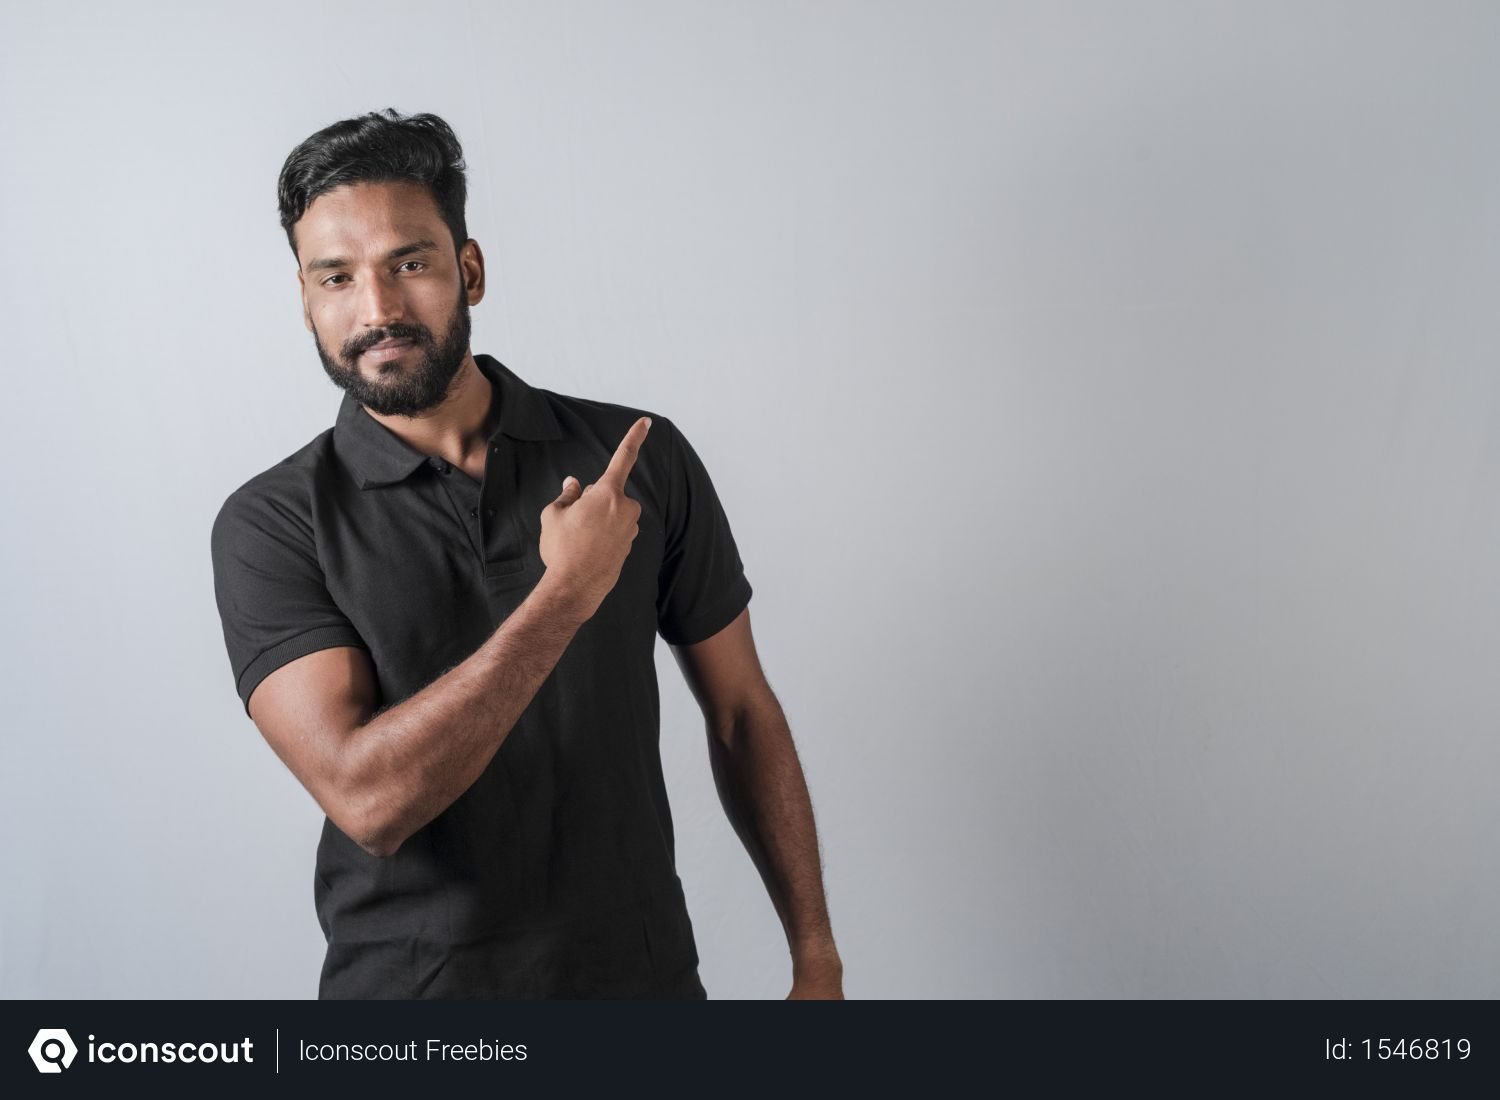 Free Handsome Stylish Man Showing Direction And Pointing With Finger With Copyspace Photo Download In Png Jpg Format Stylish Men Handsome Man